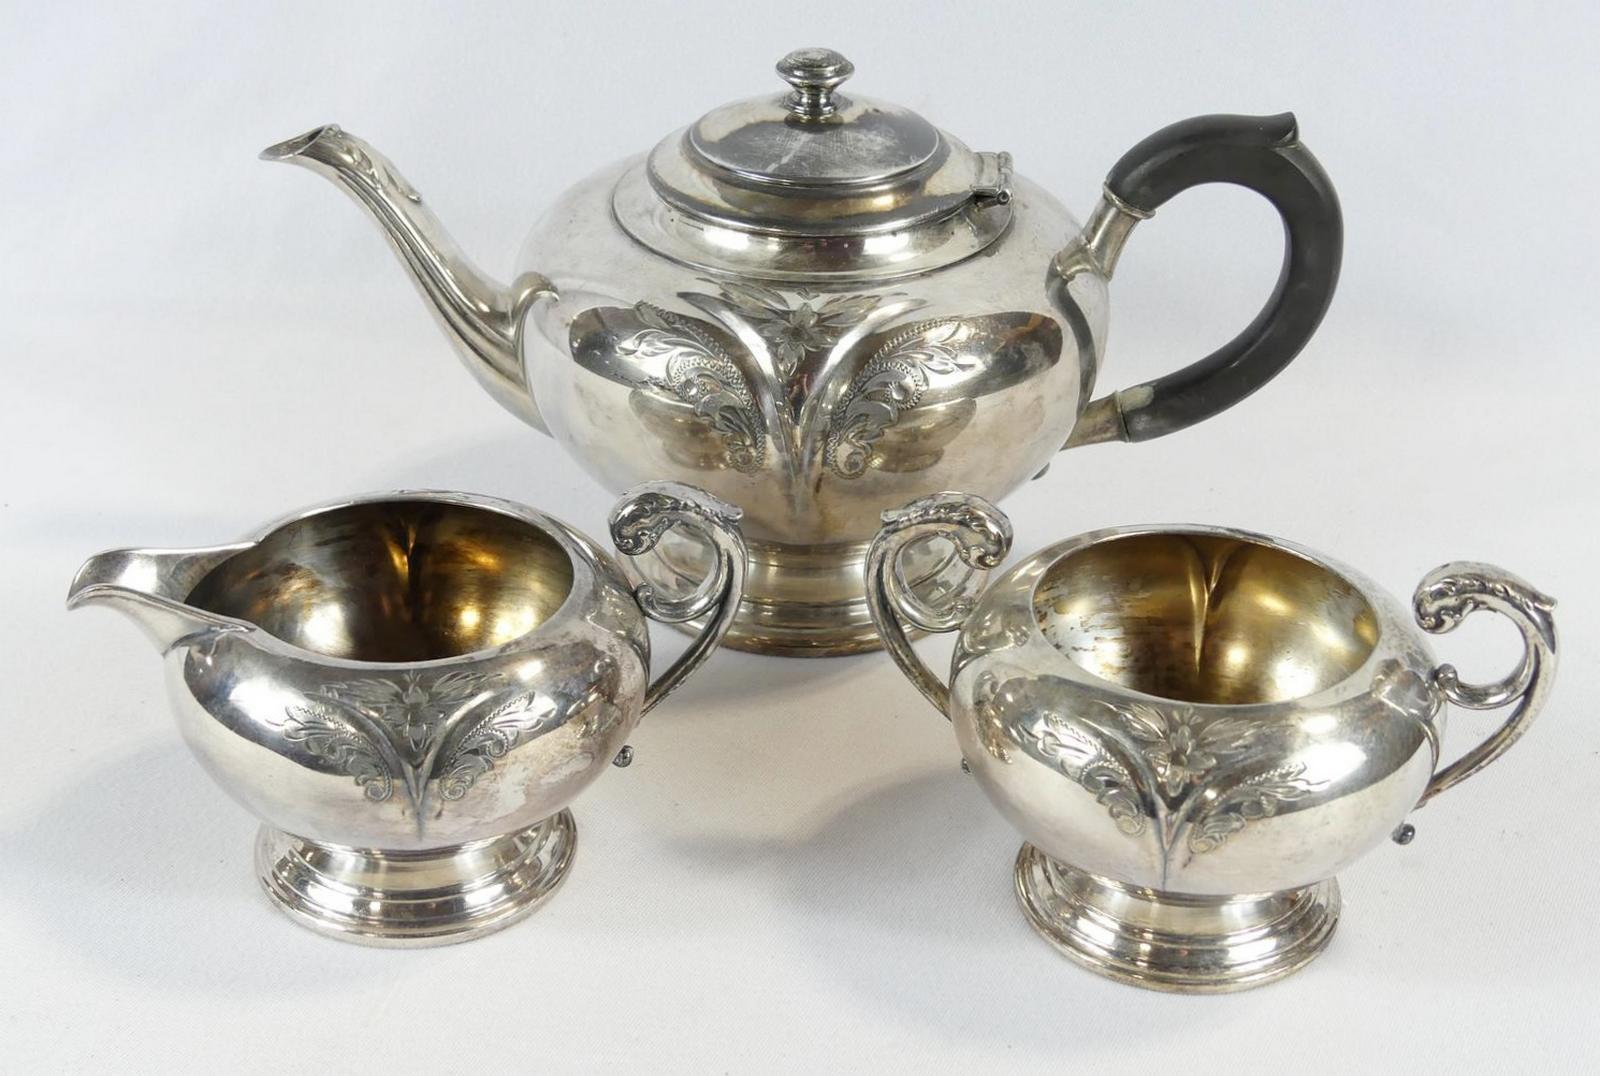 TWO SILVERPLATED TEA SETS